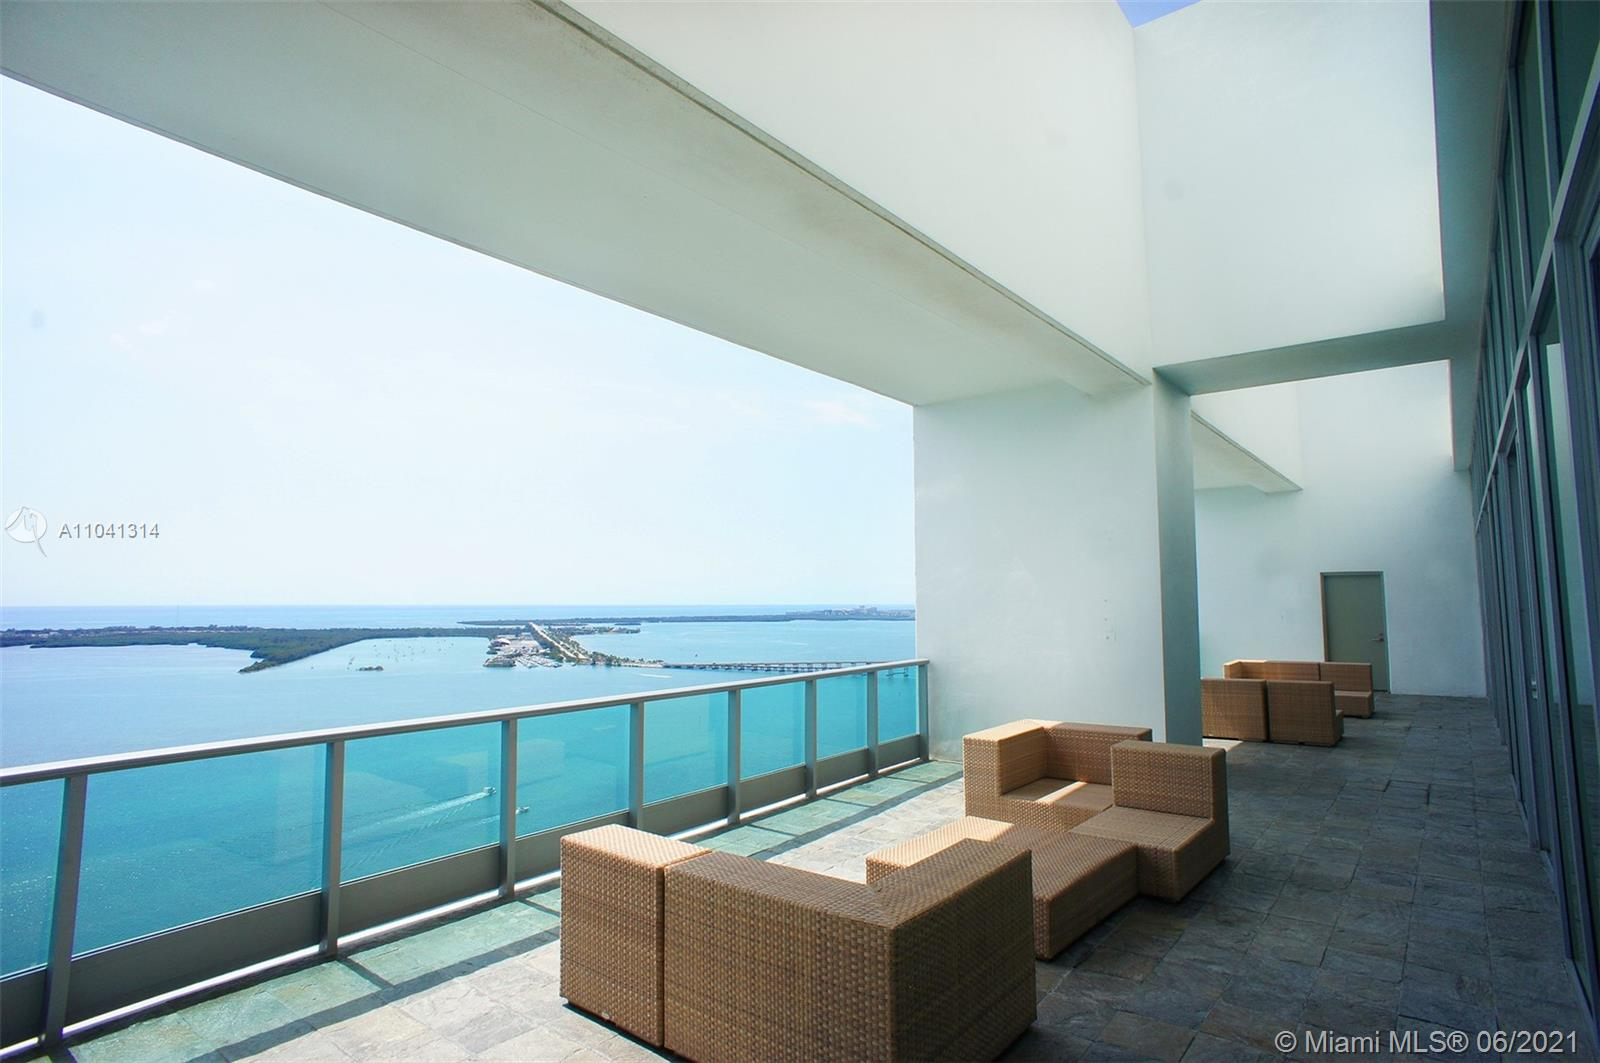 **RENTED UNFURNISHED** Absolutely stunning 2/2 corner unit in the highly coveted Jade Brickell! This unit features a spacious open floor plan with floor to ceiling windows, a sleek modern kitchen with top of the line appliances, king sized guest bedroom, huge master retreat with luxurious 5-piece en-suite bath, and over 400sf of covered outdoor living!! Partial bay views and prime location in the very heart of Brickell. Resort-style amenities include: Infinity edge pool, tanning pool, SPA, fitness center, racquel ball courts, business center, 48th Floor Lounge, children play room, and more. 2 Parking Spaces: 1 assigned, 1 valet.  This is a must see. Schedule a showing today!  RENTED UNFURNISHED